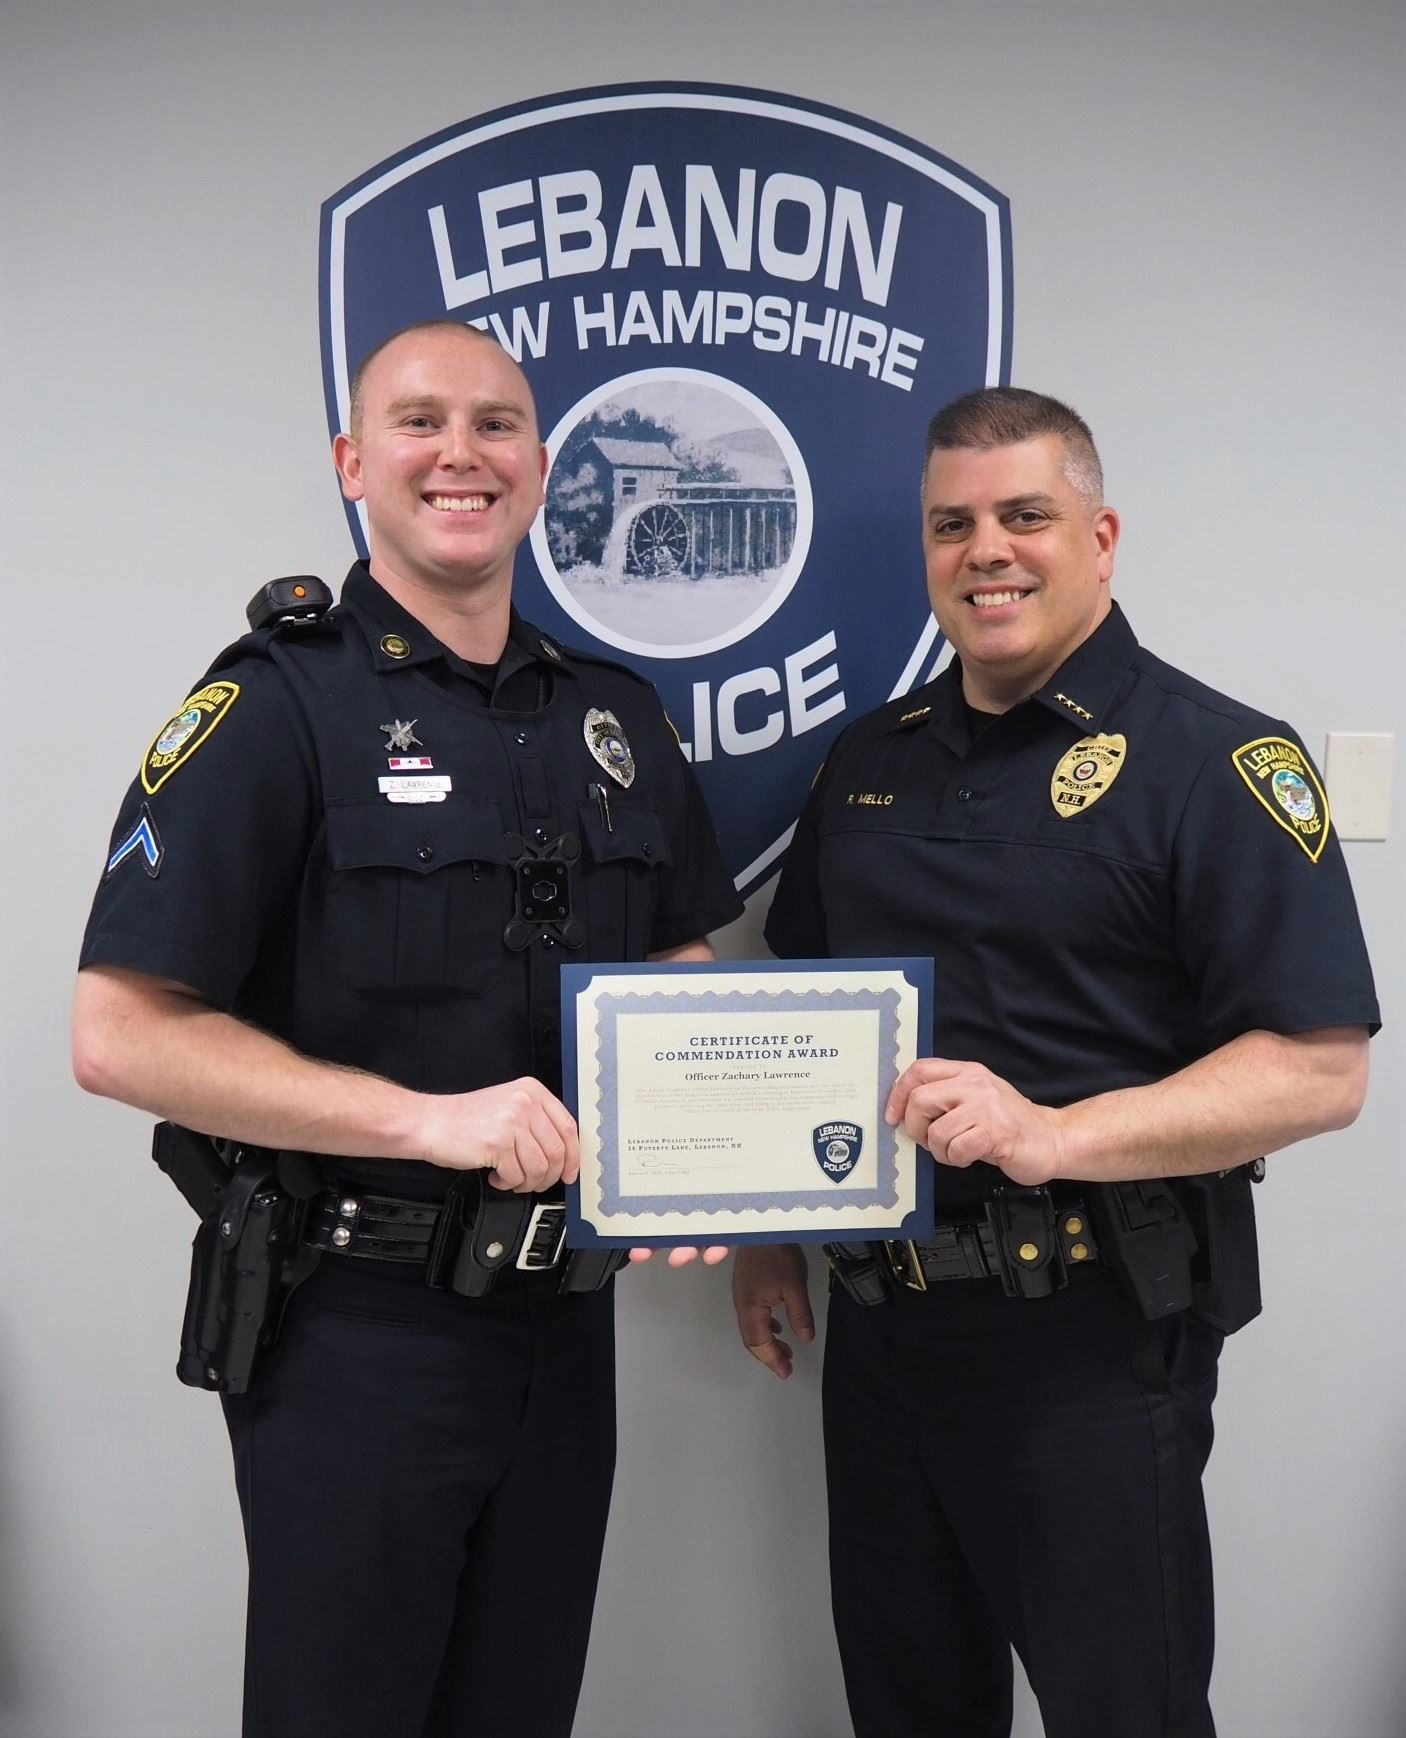 Photo of Officer Lawrence and Chief Mello